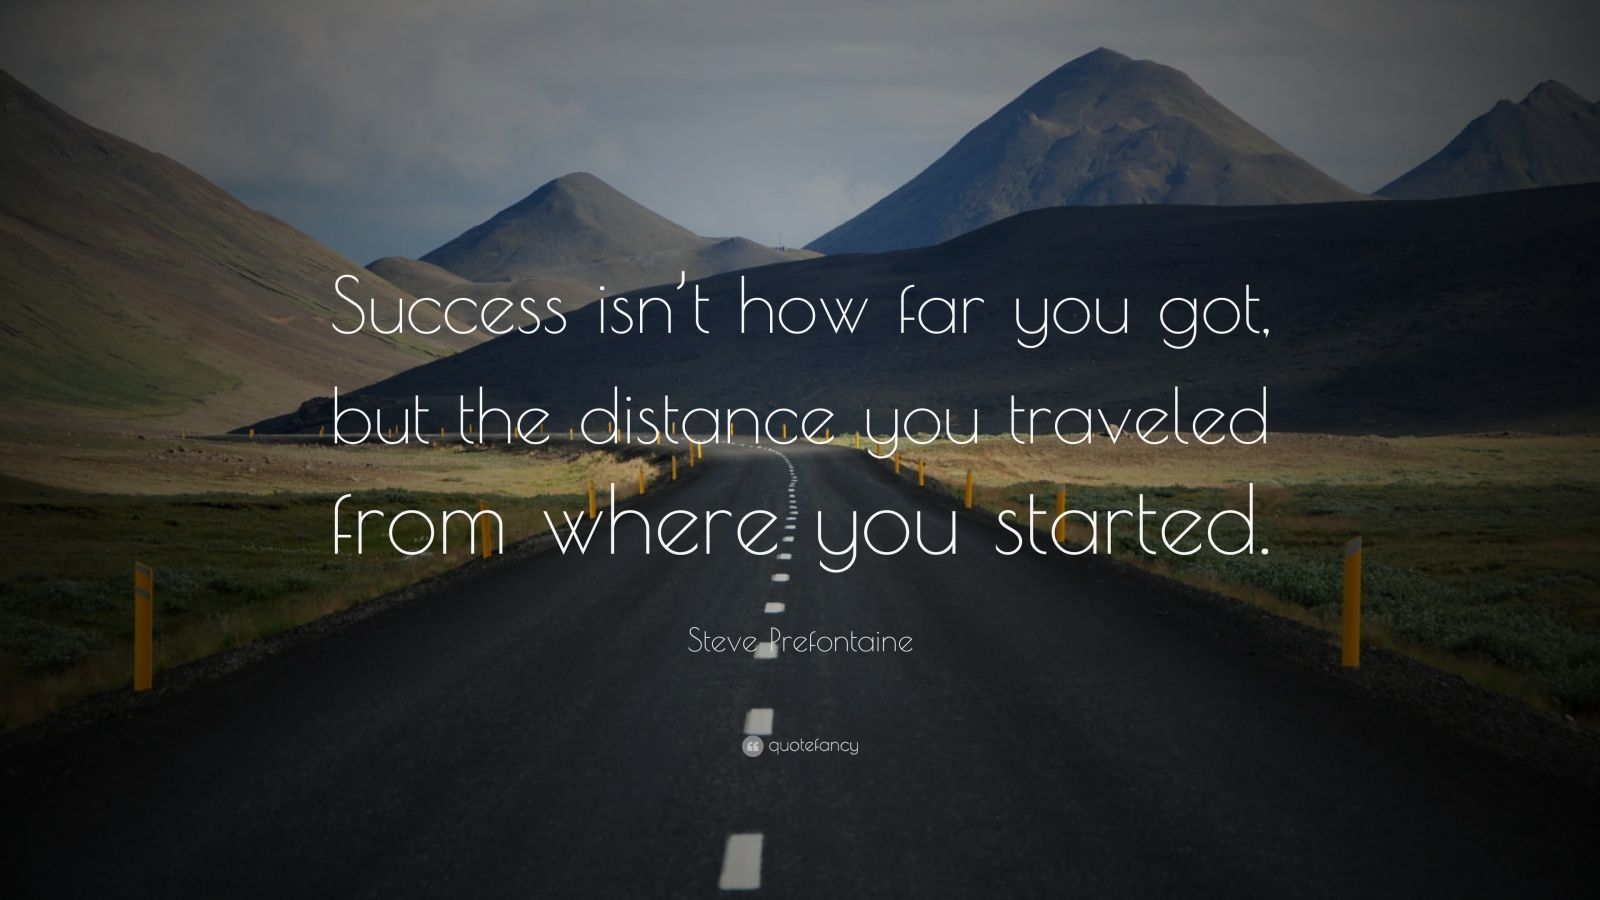 "Running Quotes: ""Success isn't how far you got, but the distance you traveled from where you started."" — Steve Prefontaine"